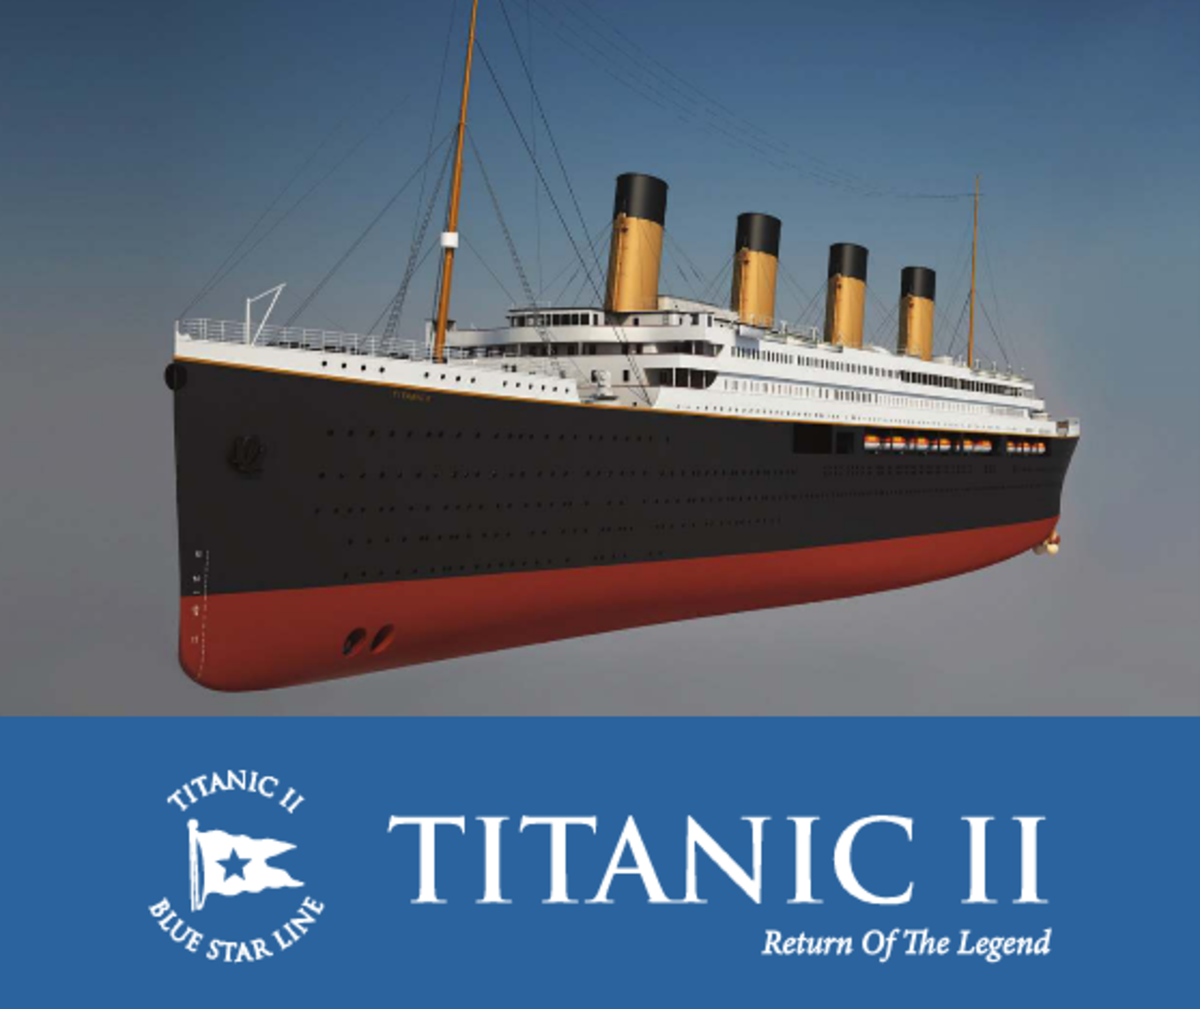 Are They Building a Replica of the RMS Titanic?